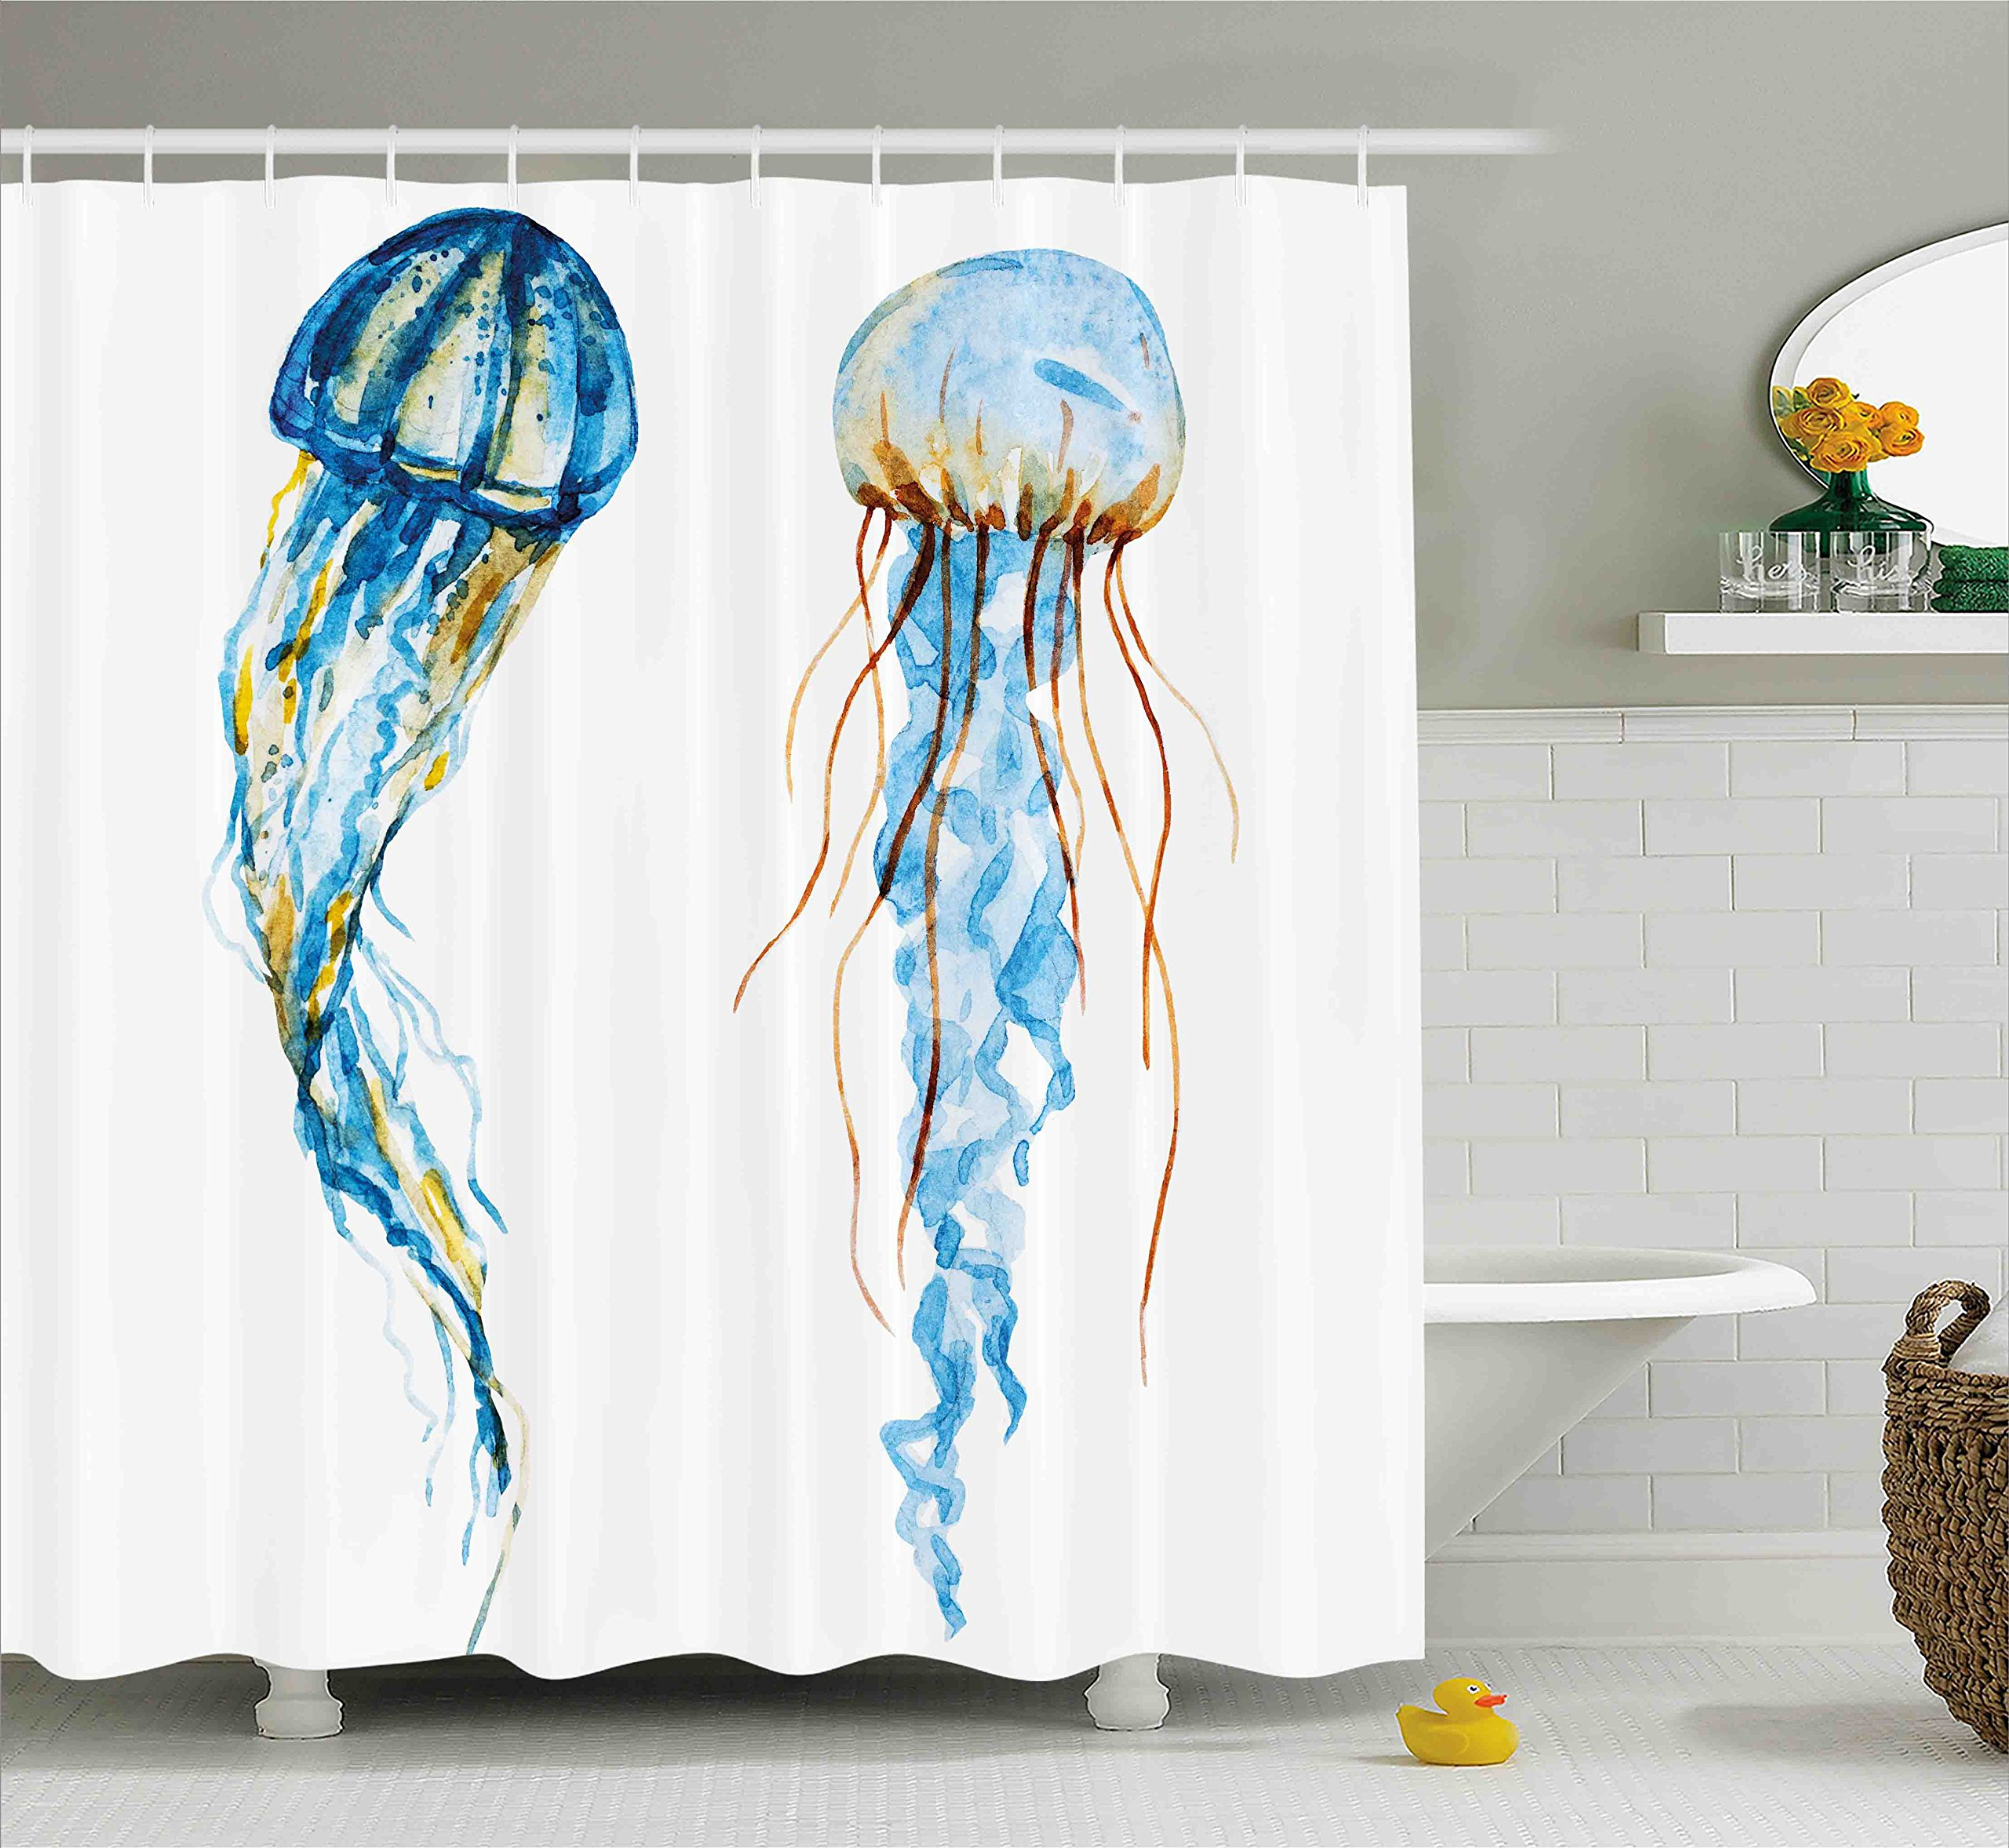 Ambesonne Nautical Decor Shower Curtain, Cute Jellyfish Exotic Sea Ocean Creature Aquatic Animals Watercolor Raster Graphic, Fabric Bathroom Decor Set with Hooks, 70 Inches, Blue